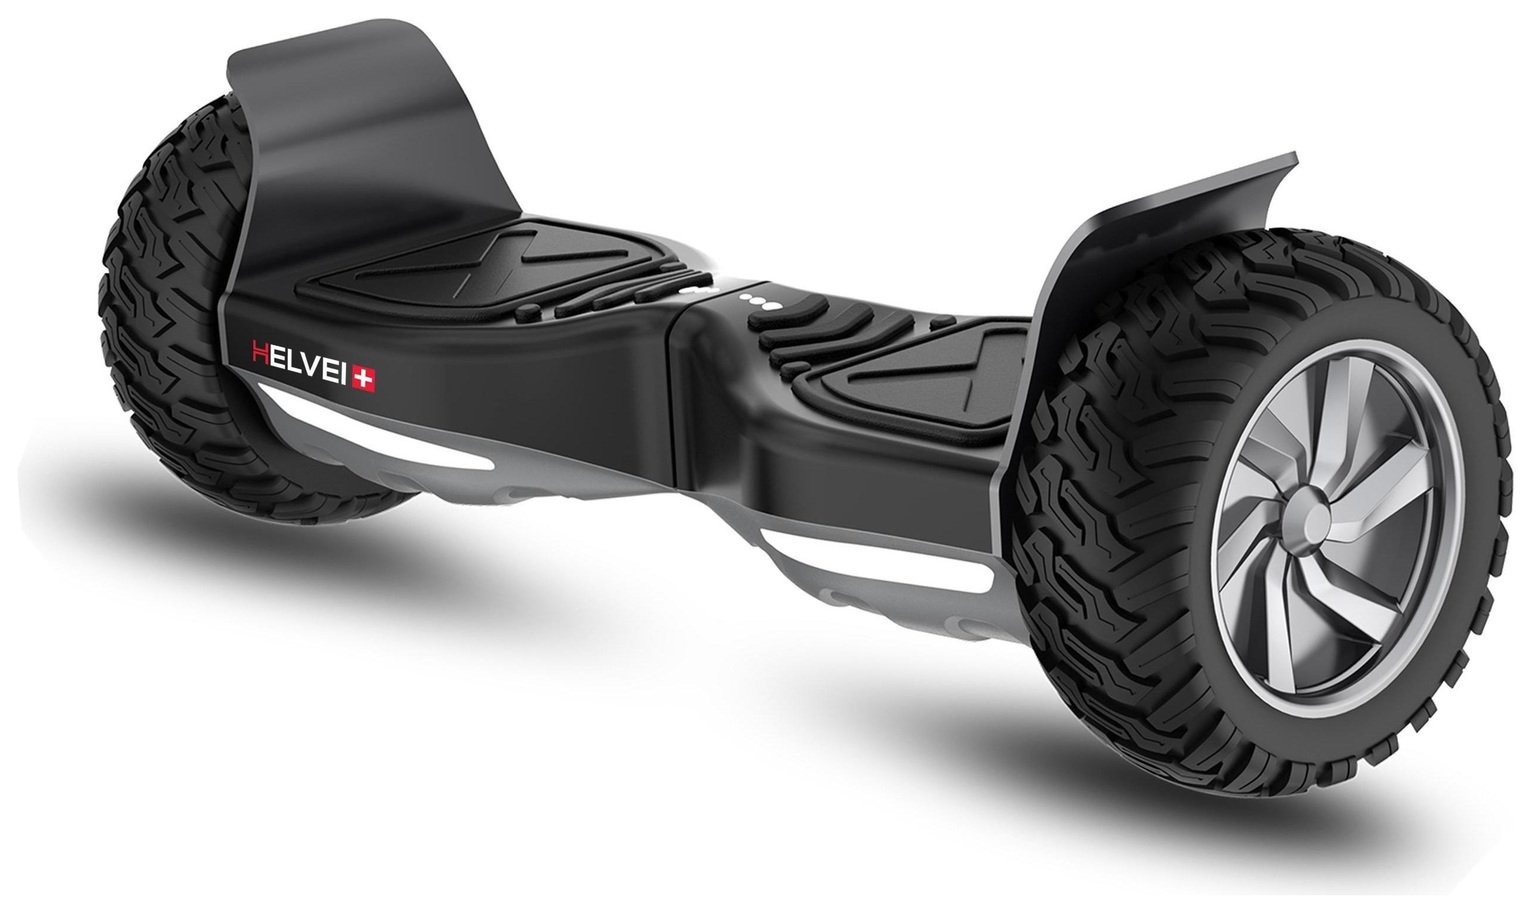 Helvei Hoverboard 8.5 Wheels - Black.